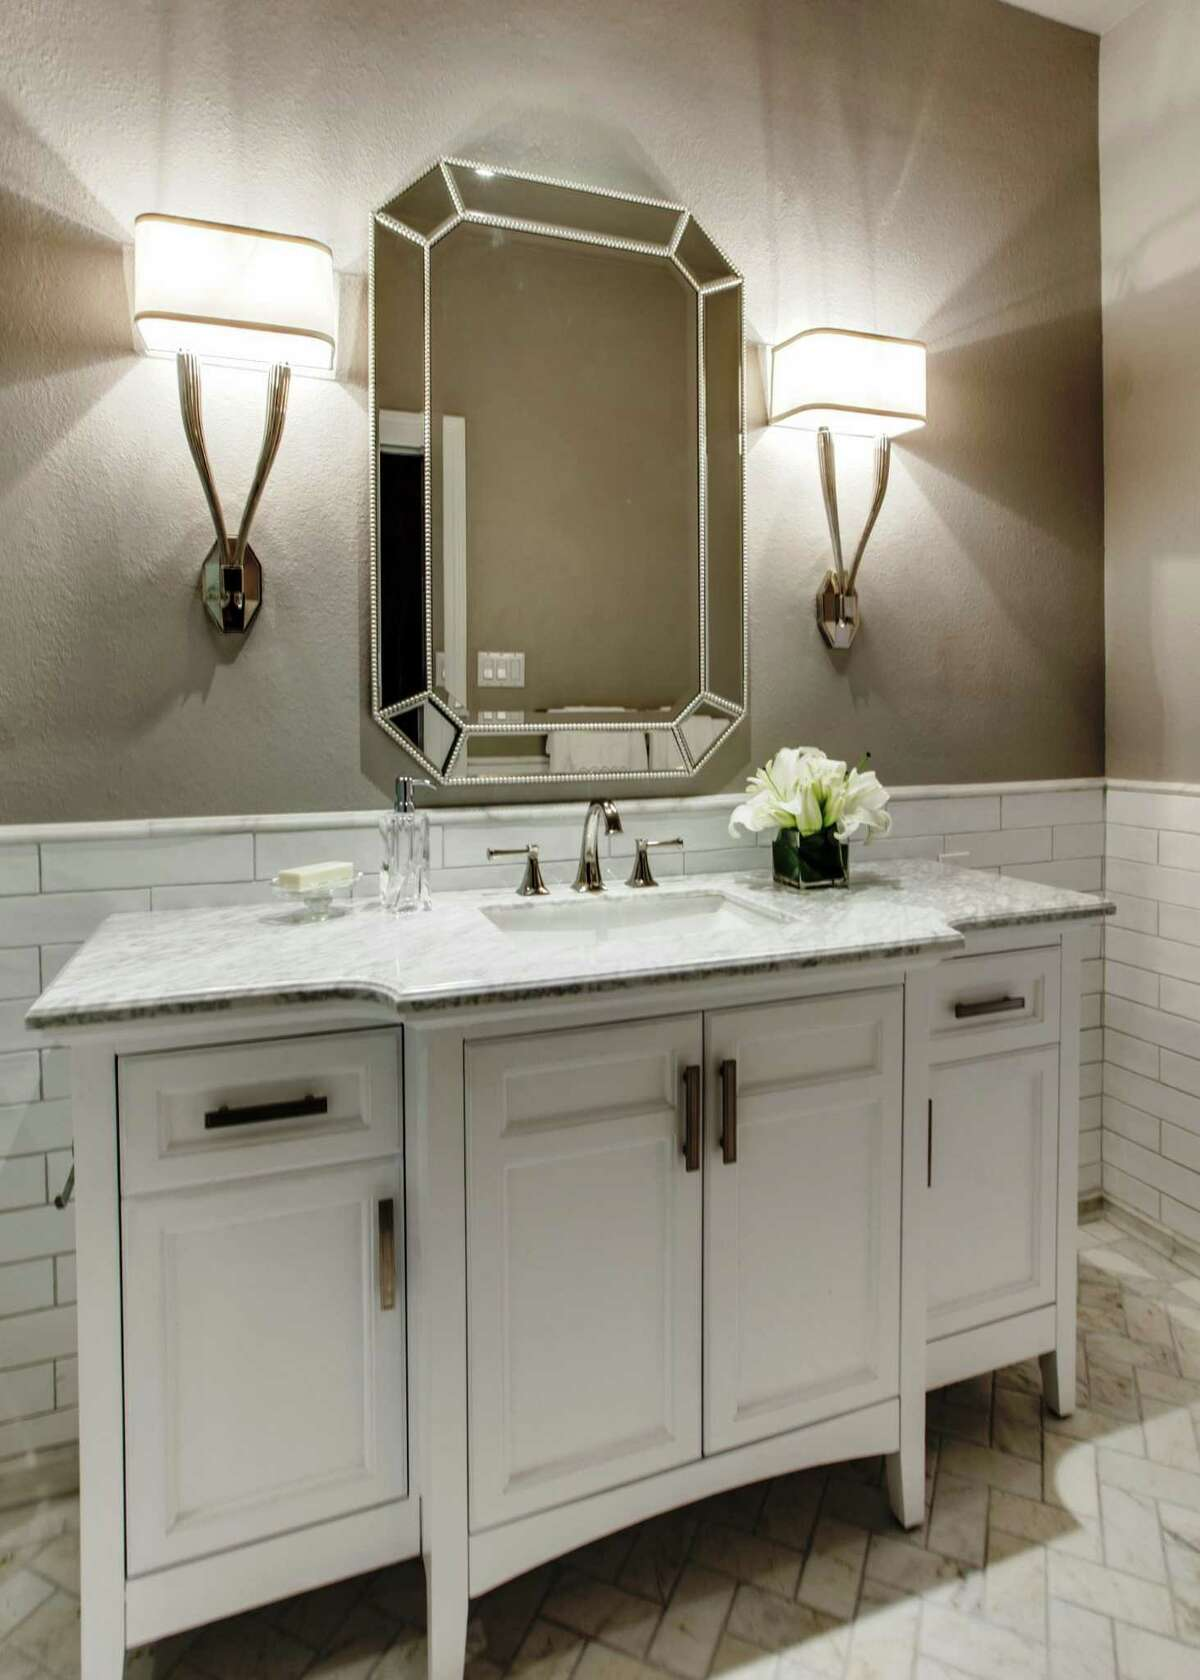 For high-end bathrooms, the furniture look can be made in styles from the ornate to contemporary. While ready-made, furniture-style vanities are available, considerations such as size and style mean they must often be custom or else semi-custom made. A larger size cabinet measuring 48 inches, but without the sink, faucet and countertop, would cost about $2,000 to design, fabricate and install, according to Jana Valdez, co-owner of Haven Design and Construction.